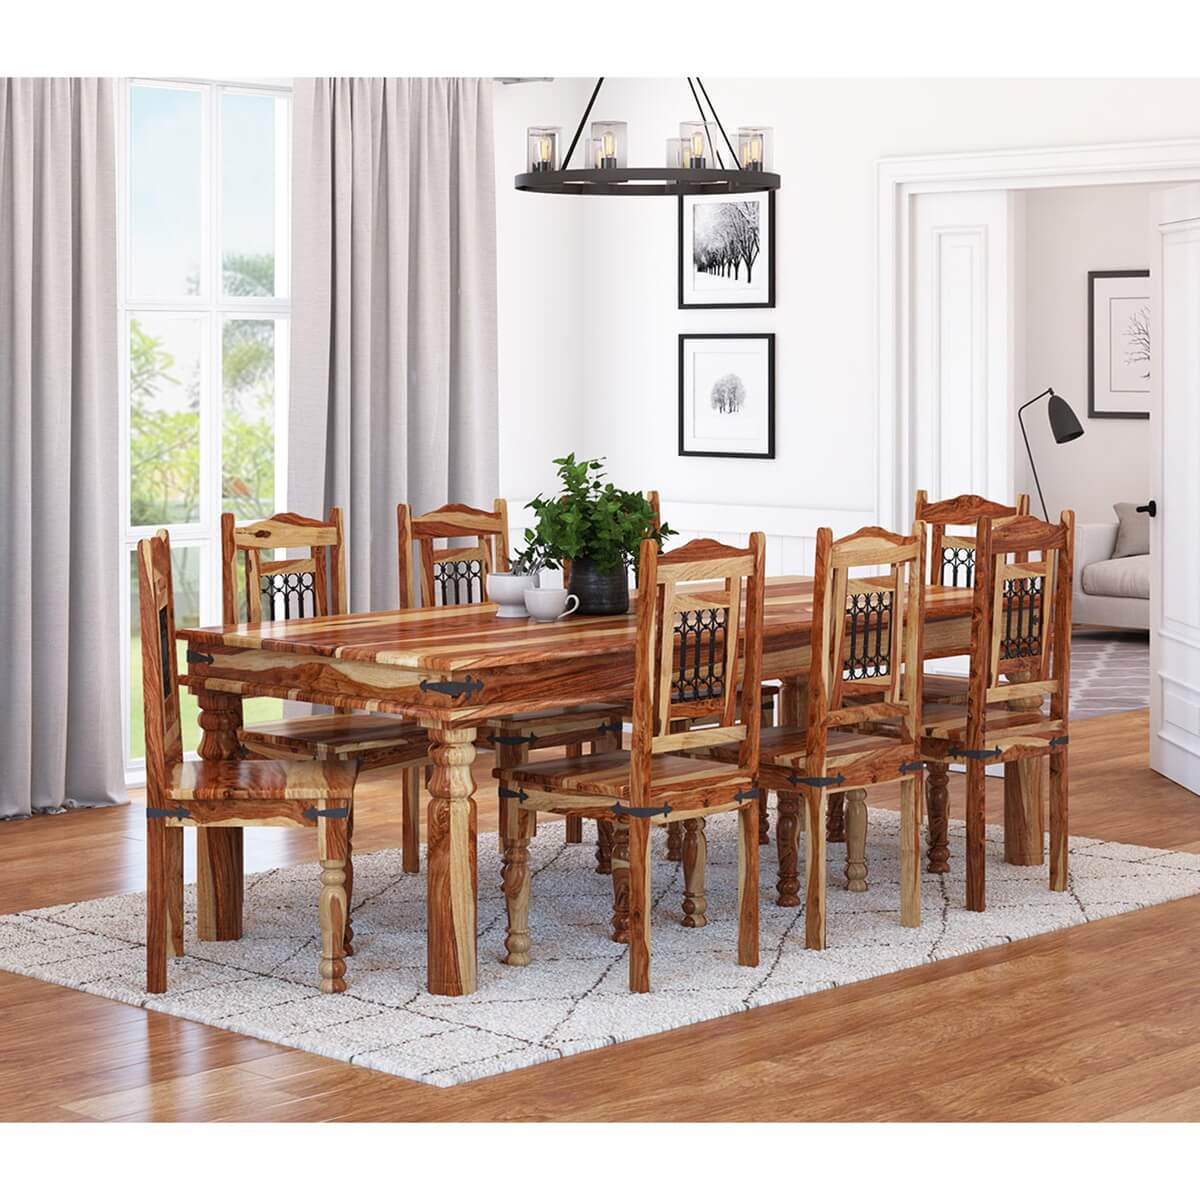 Dining Room Sets Wood: Dallas Classic Solid Wood Rustic Dining Room Table And